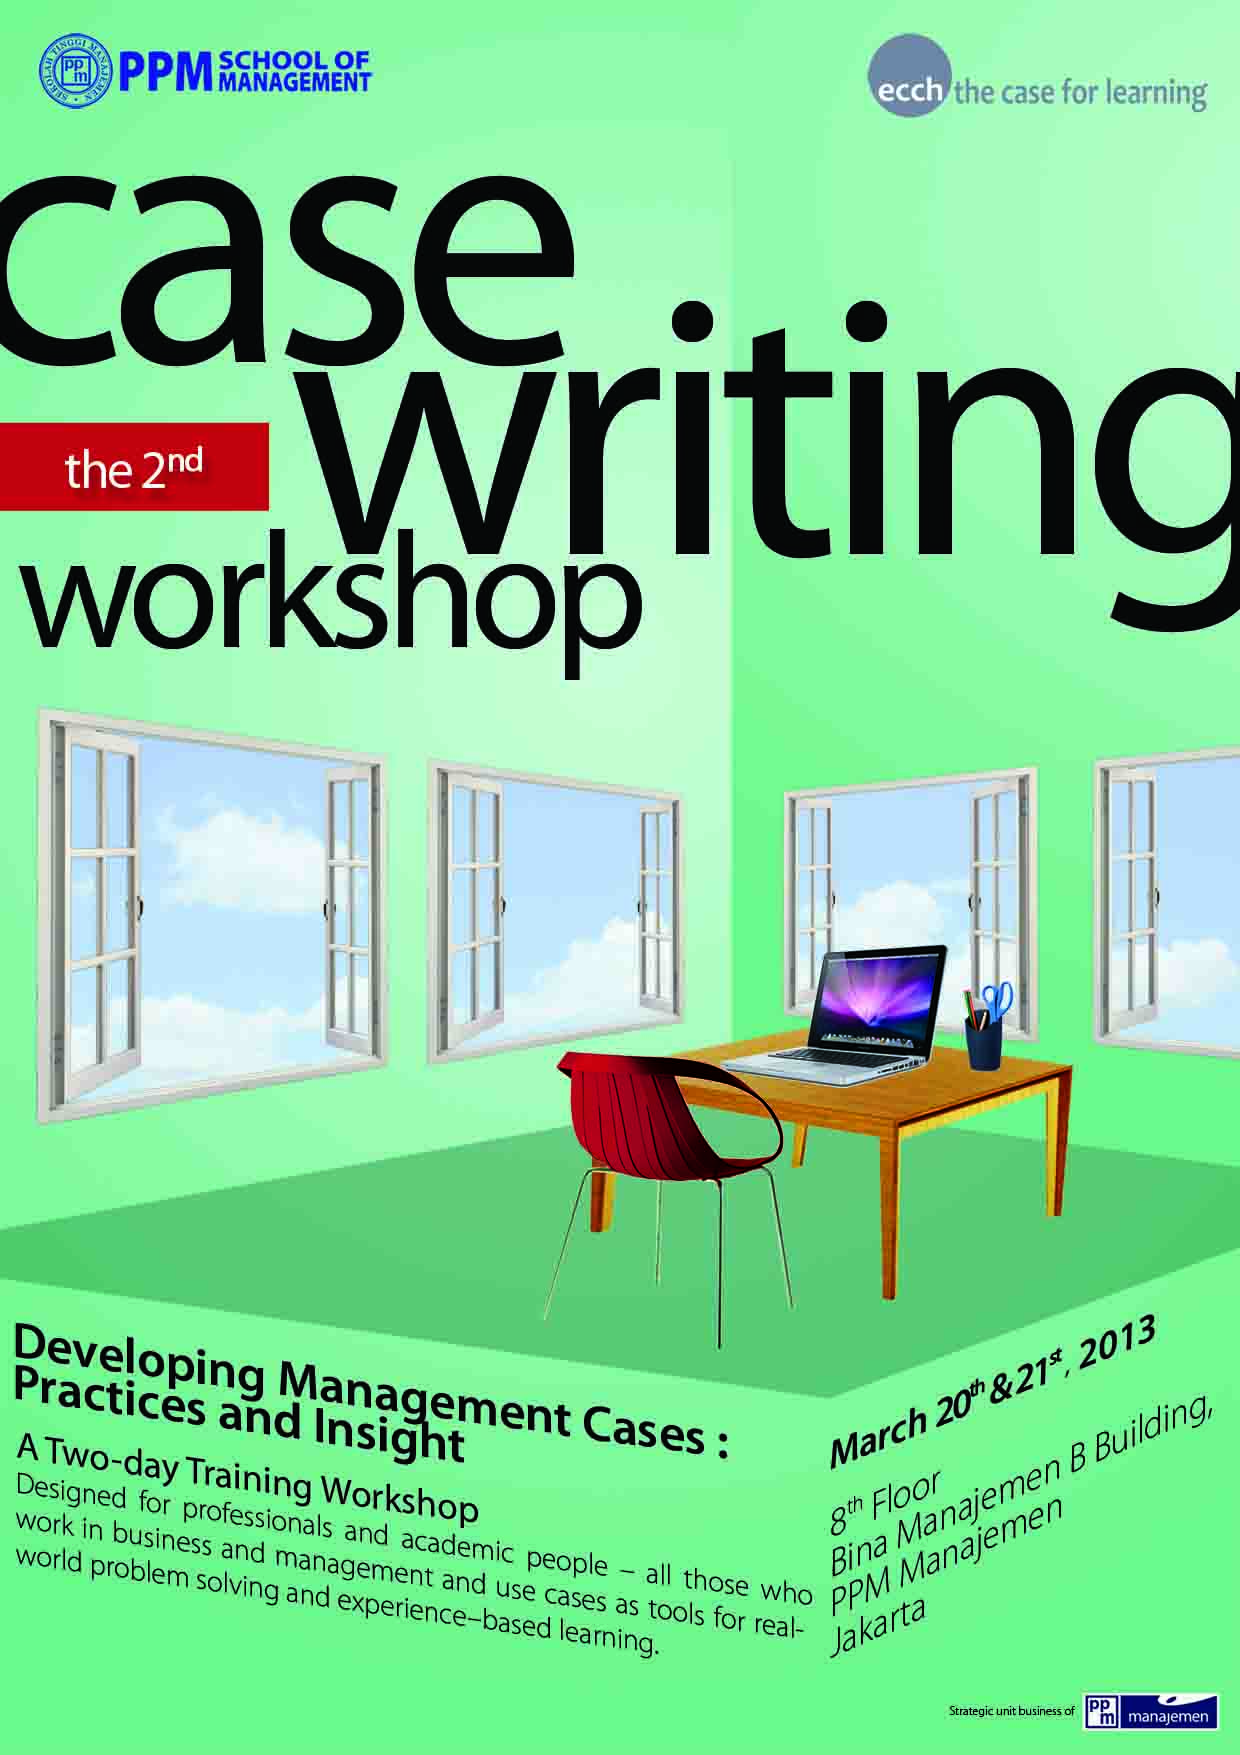 case study writing workshop Time: wednesday: thursday: friday: topic: case teaching: case writing: case writing: 09:00-10:00: case study: vaillan t-what makes a.